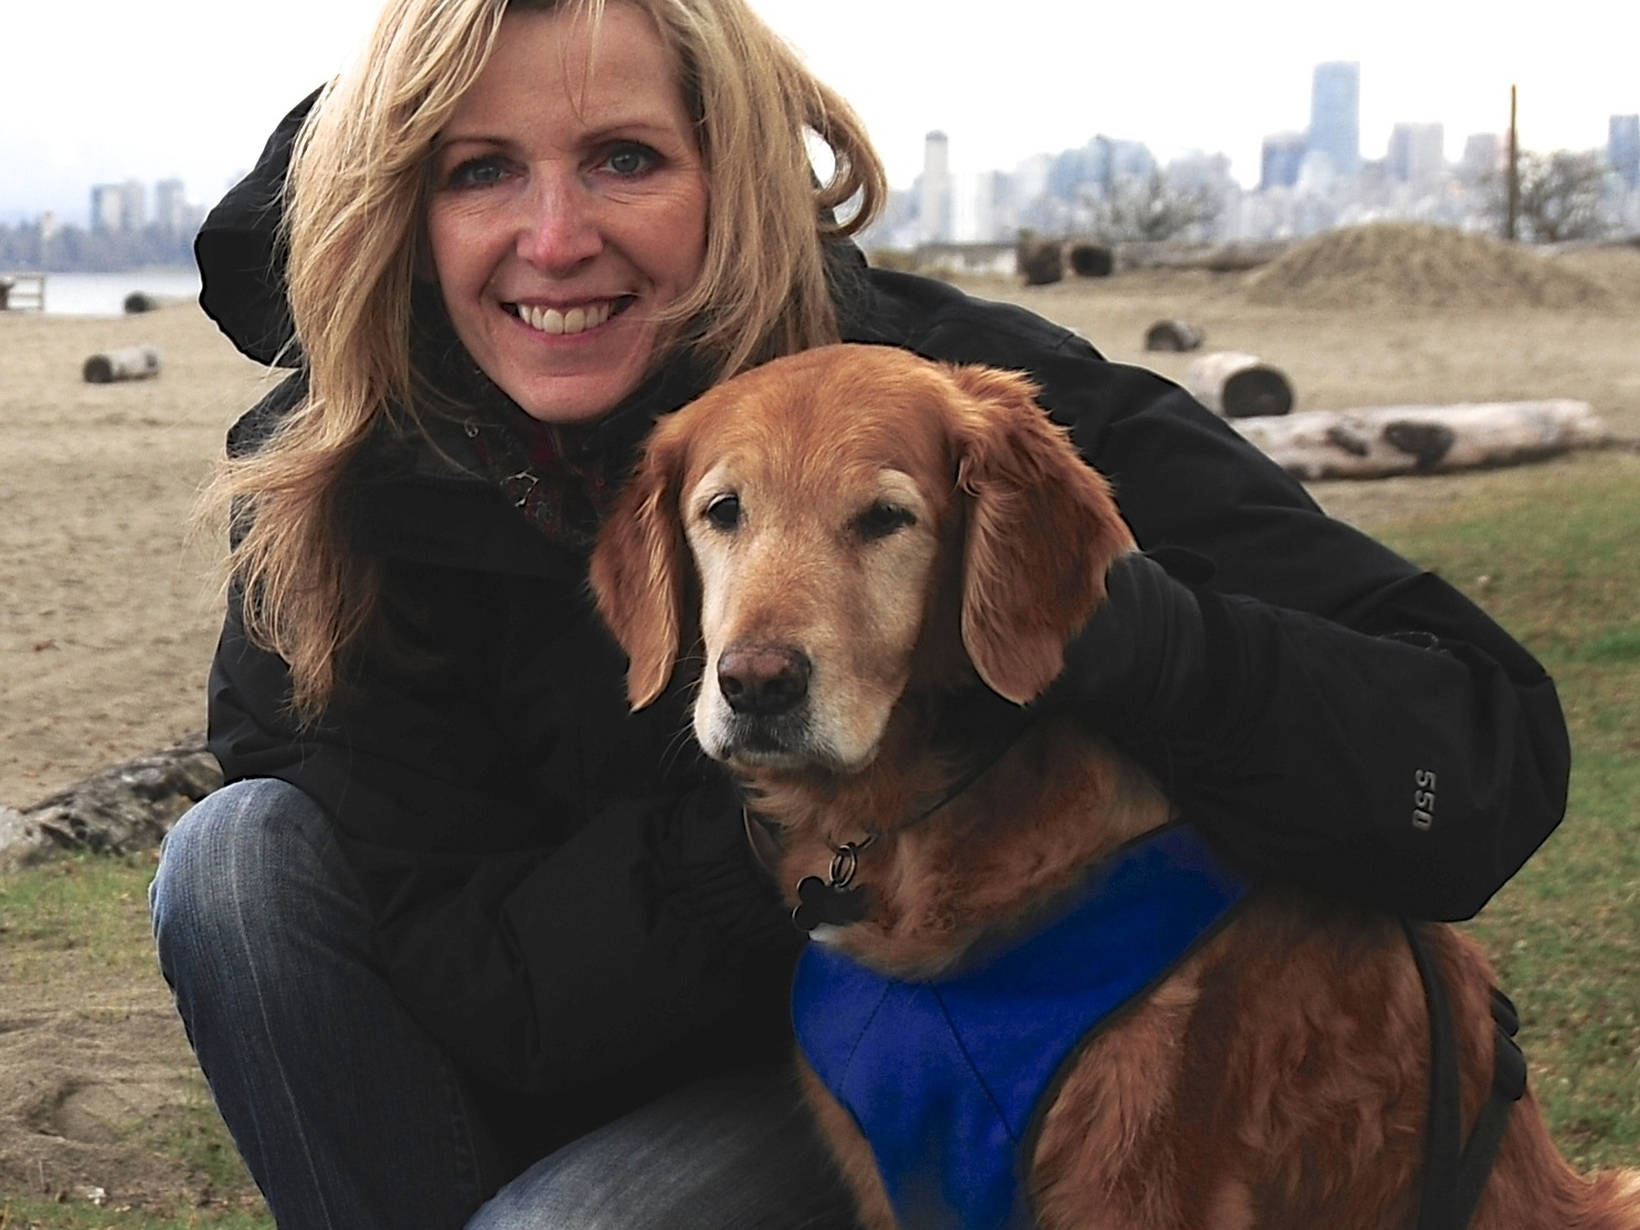 Hilary anne from Vancouver, British Columbia, Canada